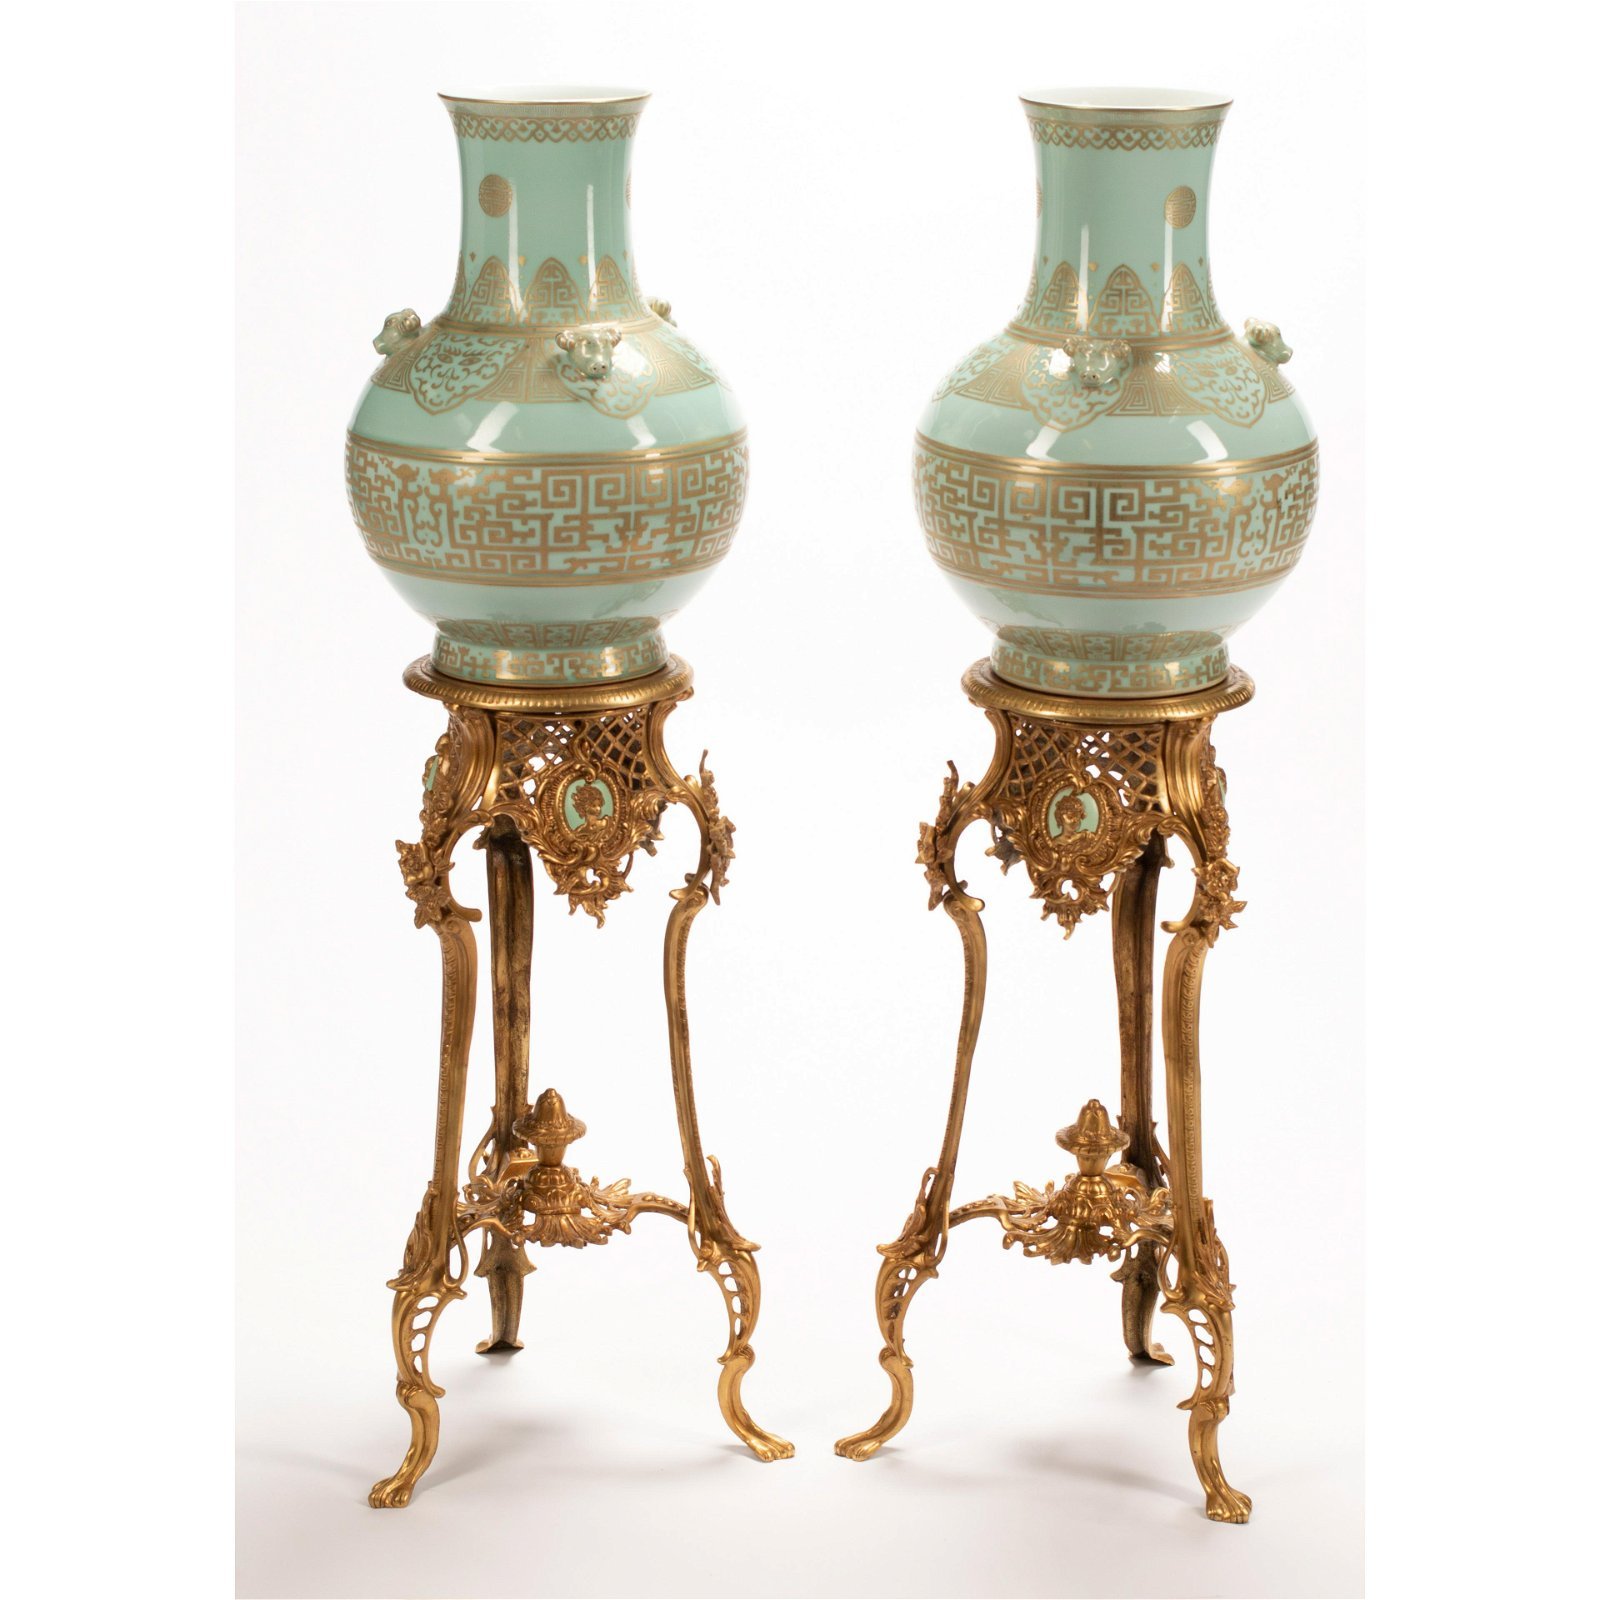 Pair of Chinese Gold Painted Celadon Porcelain Vases on